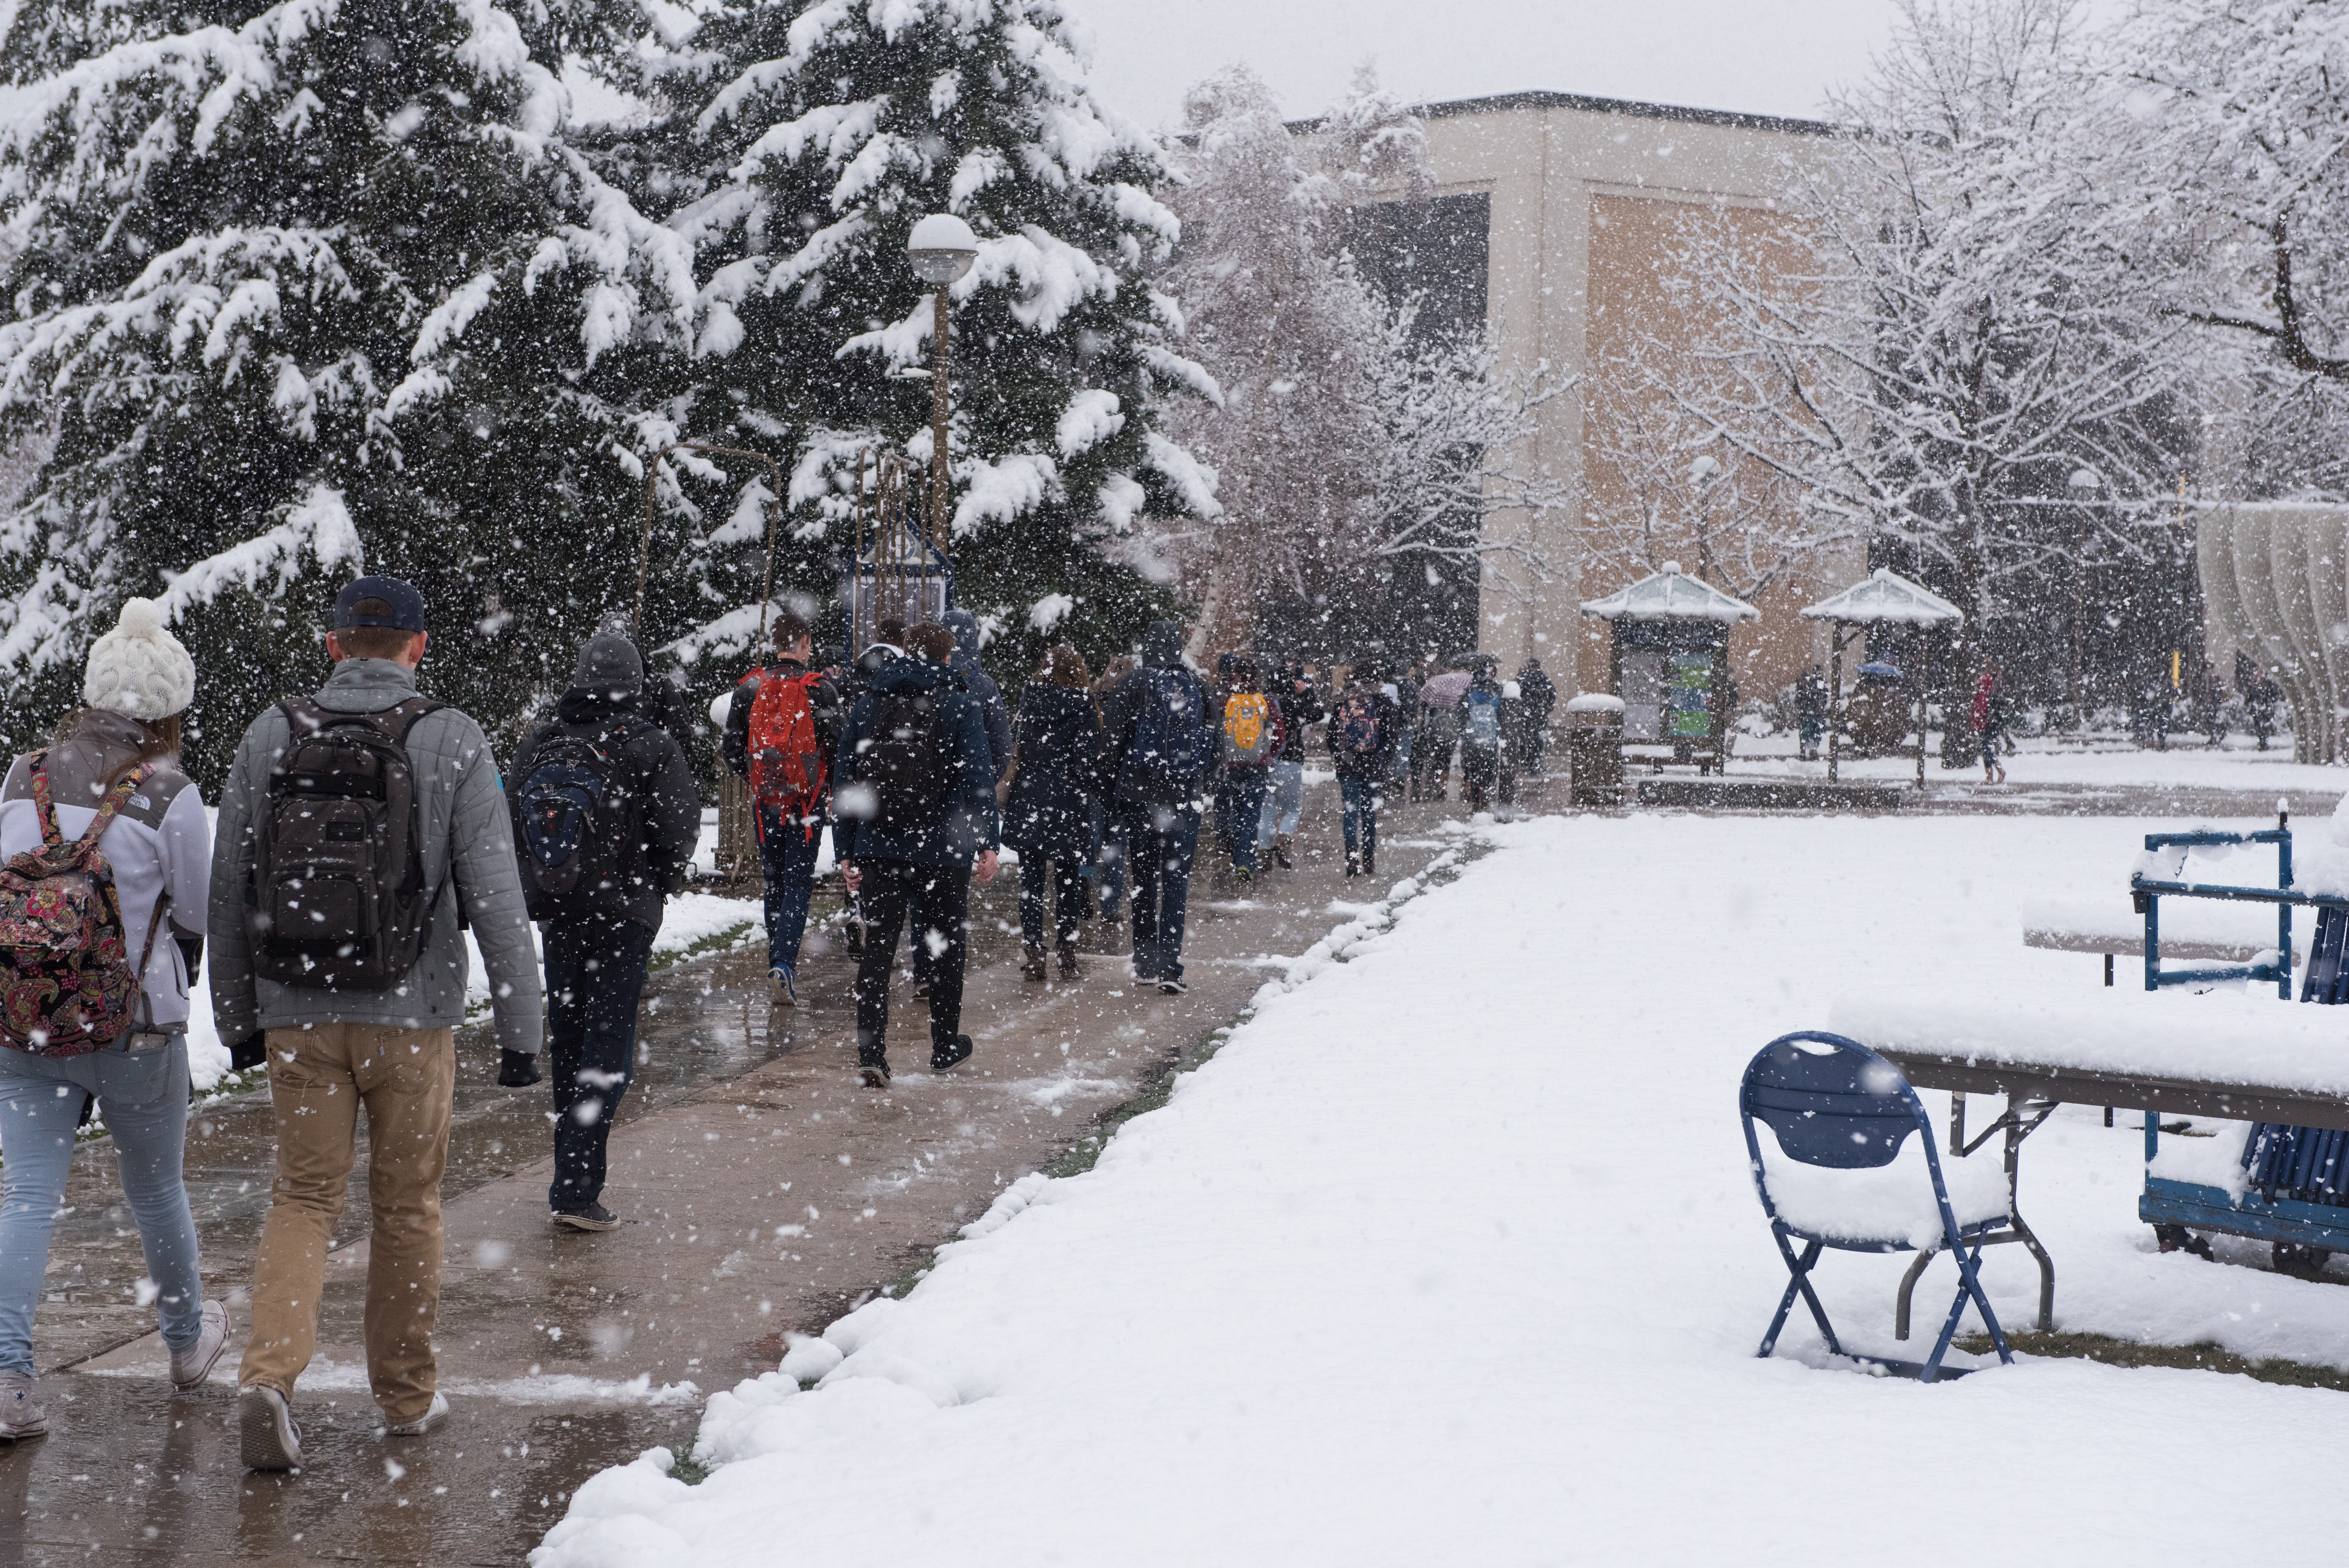 byu students have slim chance of snow days the daily universe